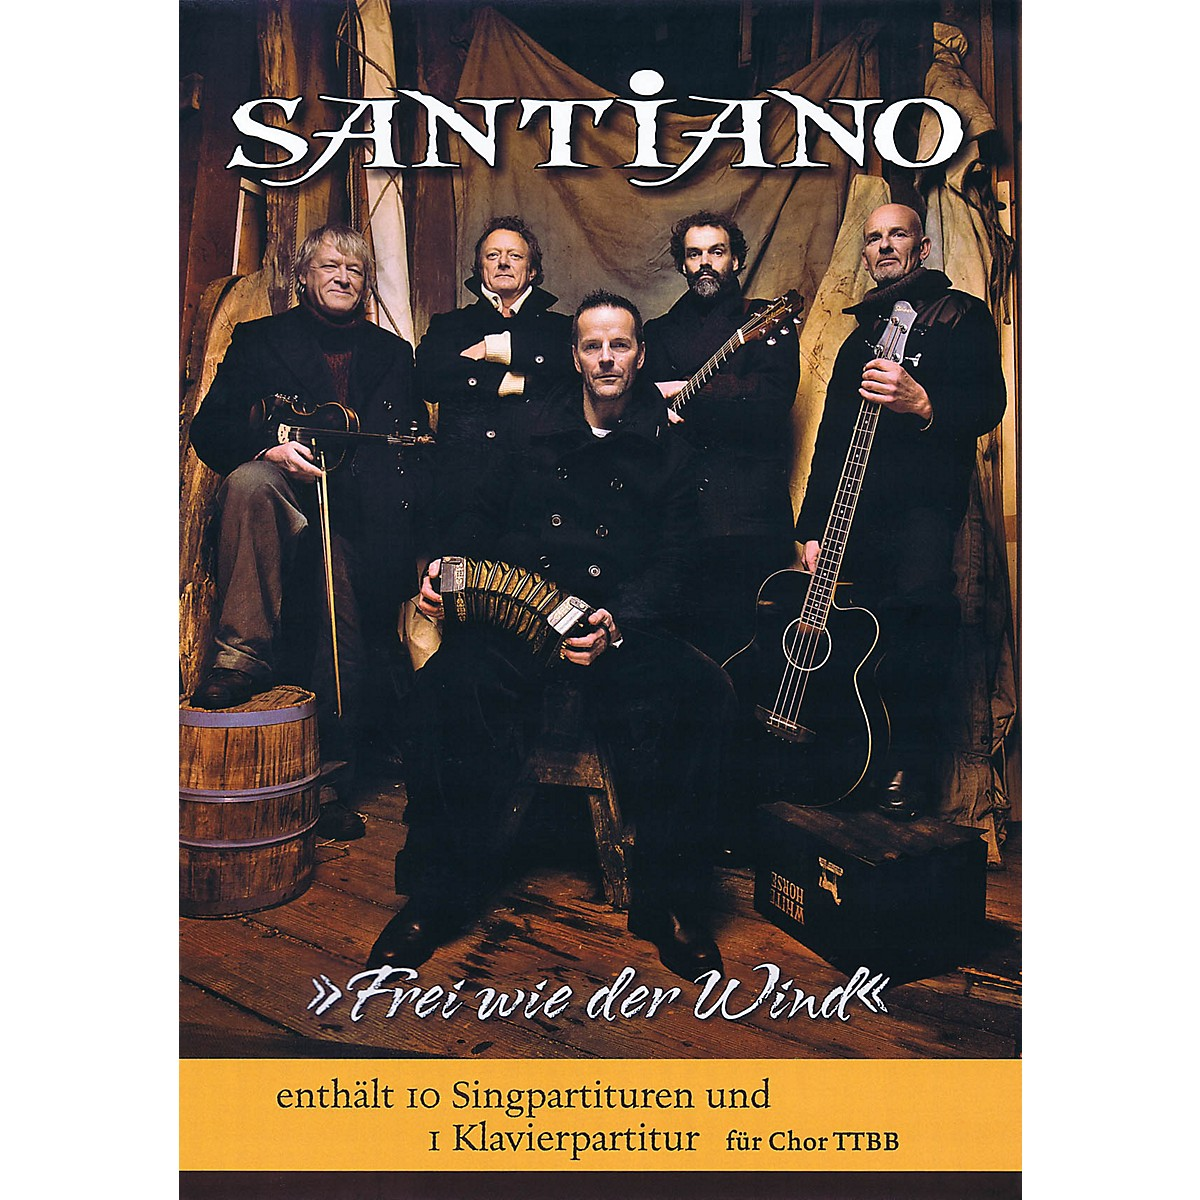 Bosworth Frei wie der Wind (TTBB Chorus and Piano 10 Choral Parts and Piano Part) by Santiano